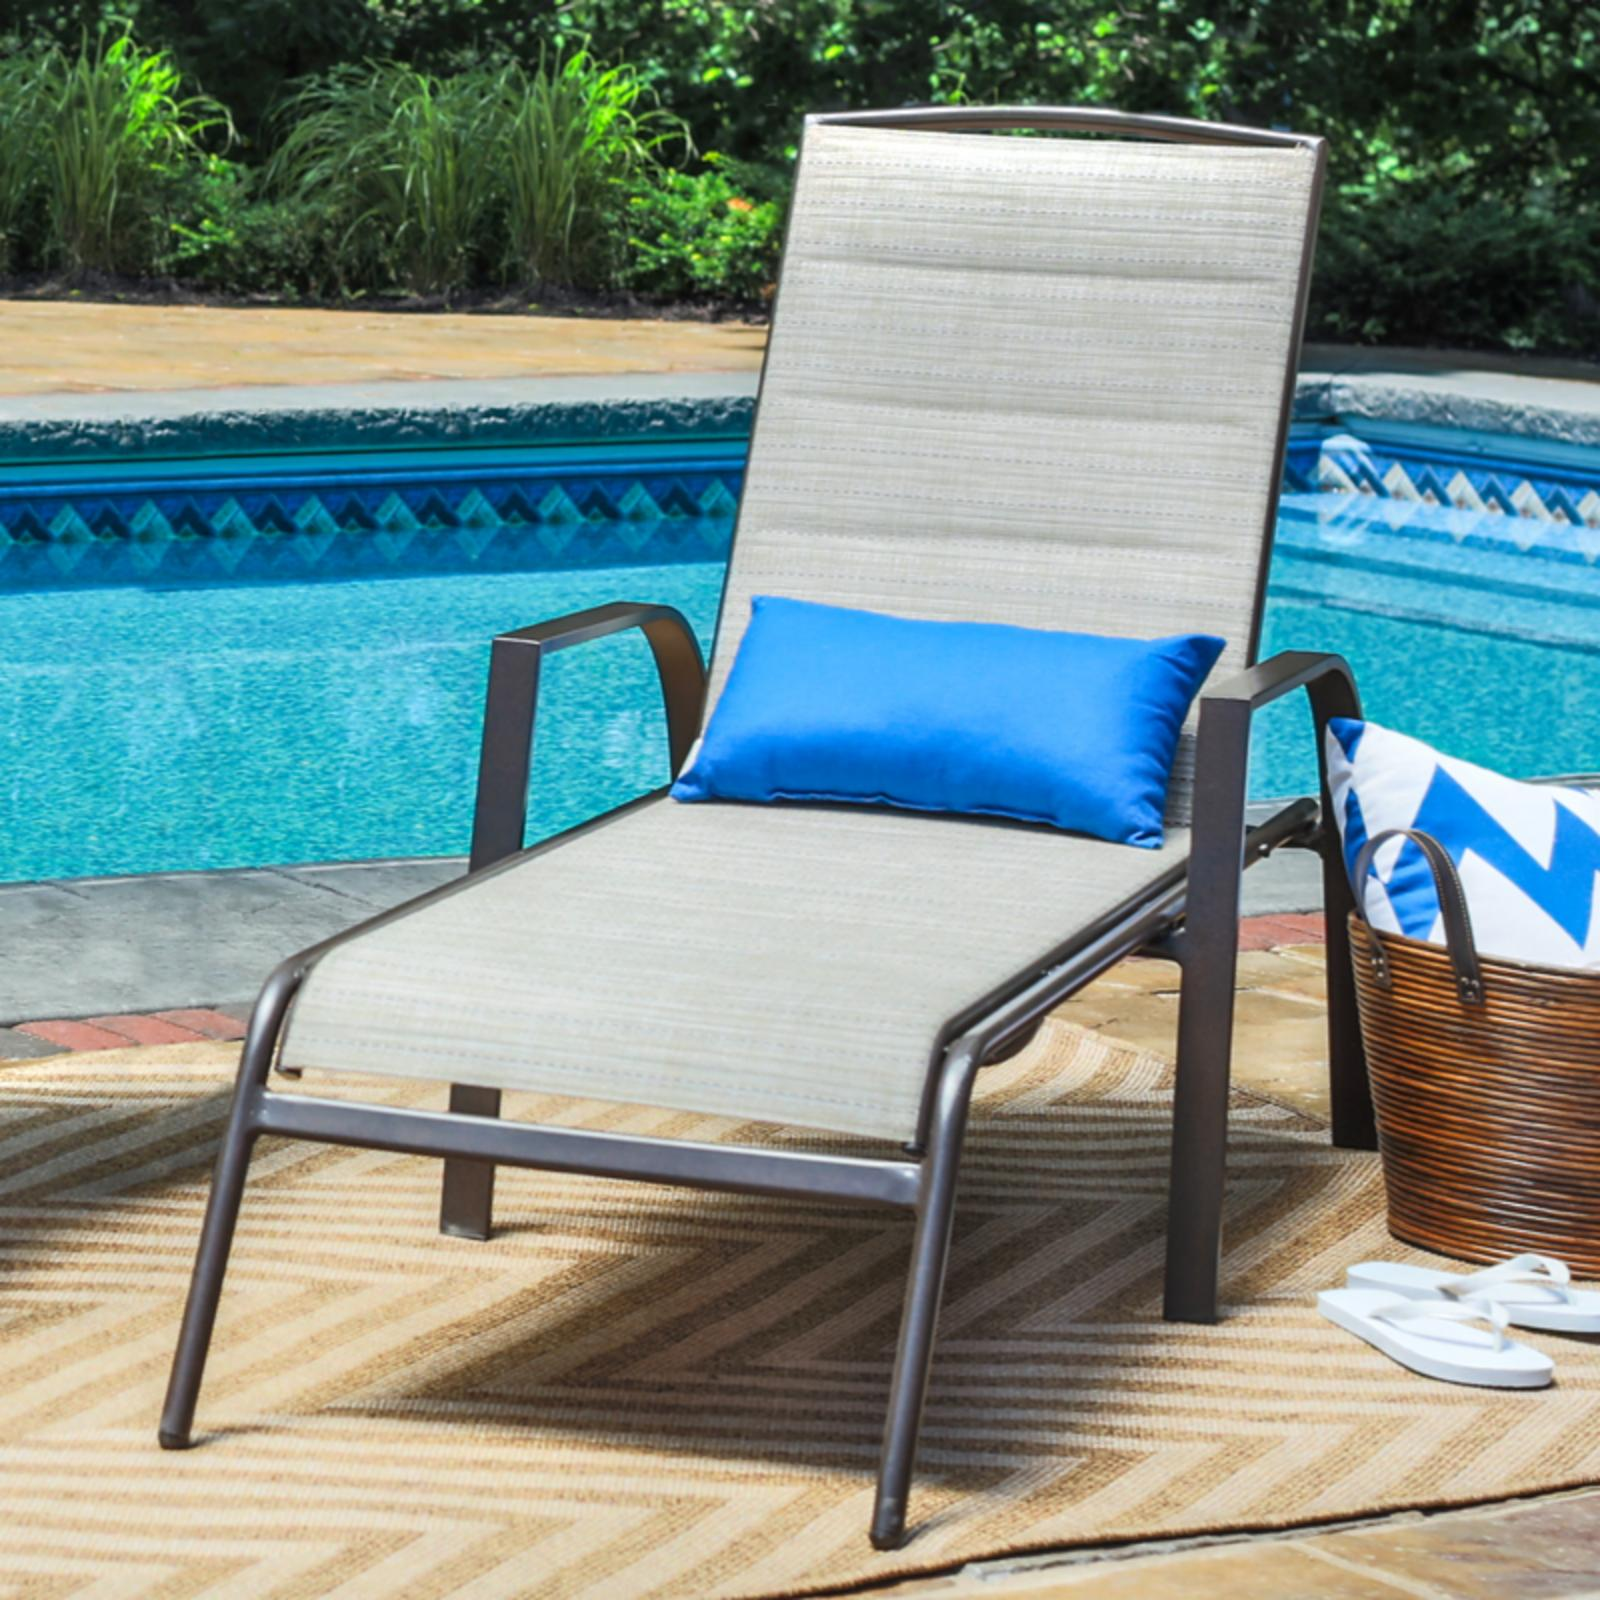 Outdoor Coral Coast Del Rey Padded Sling Chaise Lounges - Set of 2 Beach - BW-PBL03B-2032